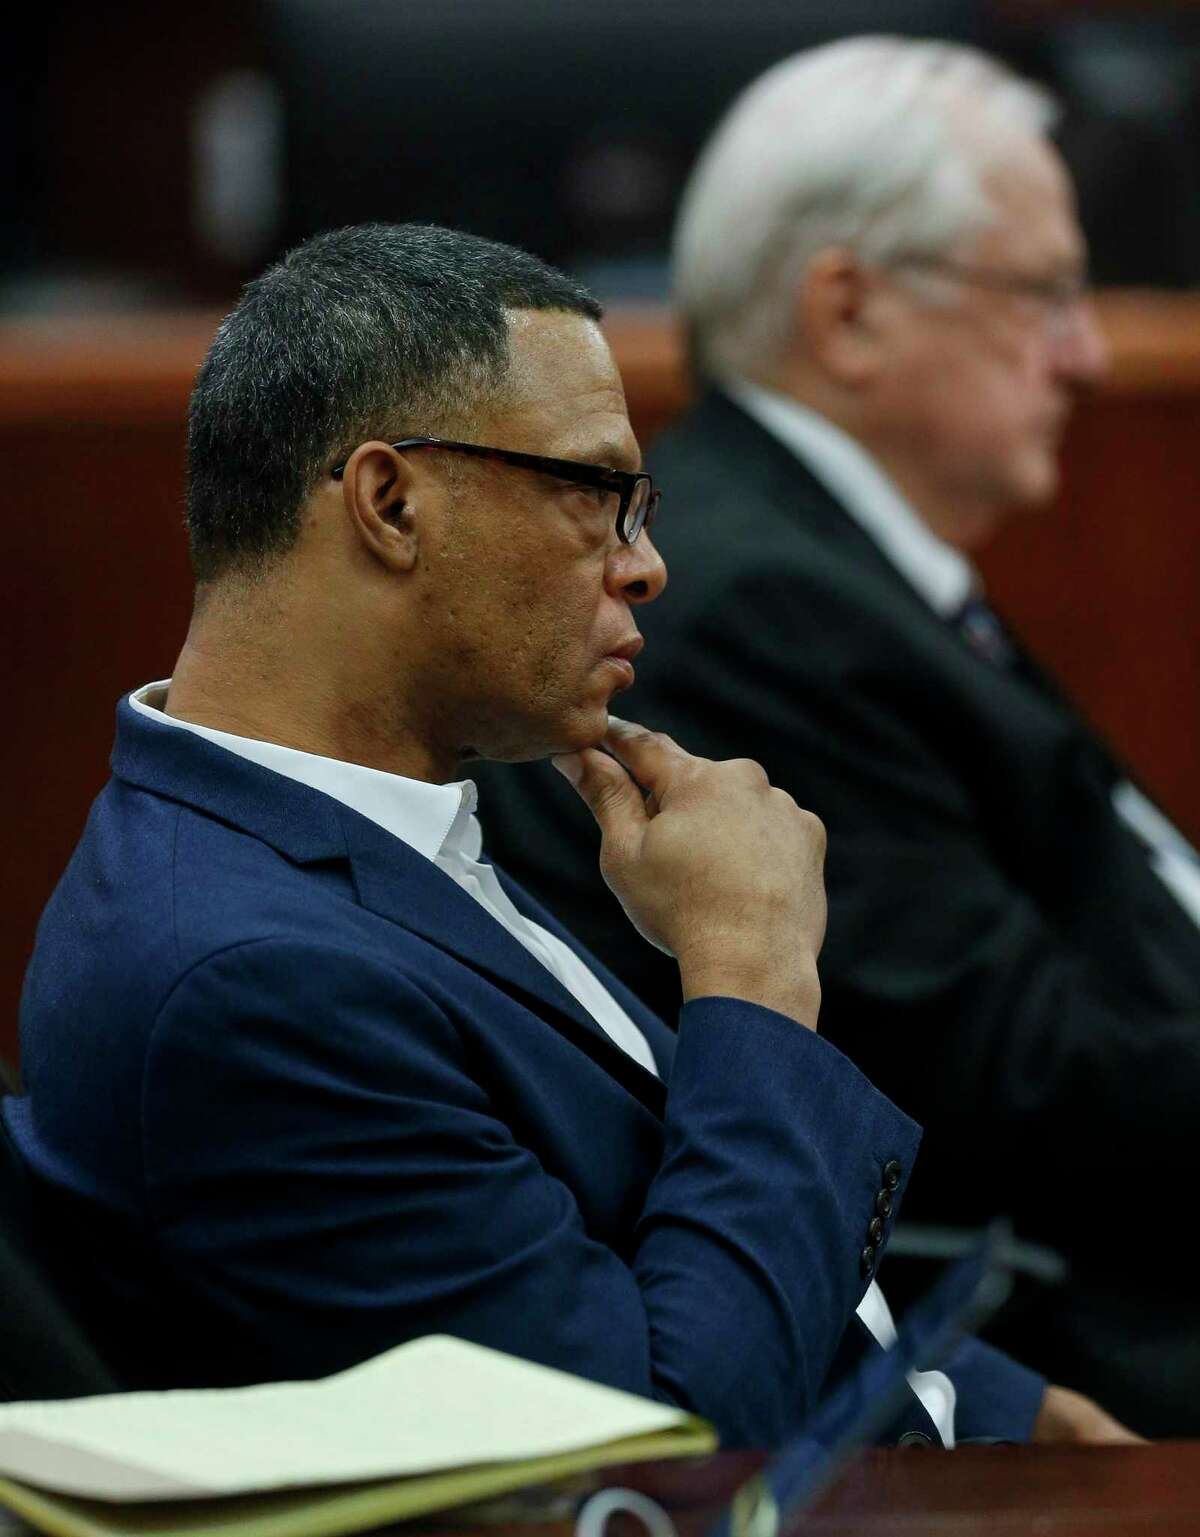 Lucky Ward listens to the closing statements in the punishment phase of his death penalty trial inside Harris County Criminal Court on Tuesday, March 10, 2020, in Houston. The jury last week convicted the Houston man of strangling to death a transgender woman, Charlie Rodriguez, and a homeless woman, Reita Long, in 2010.